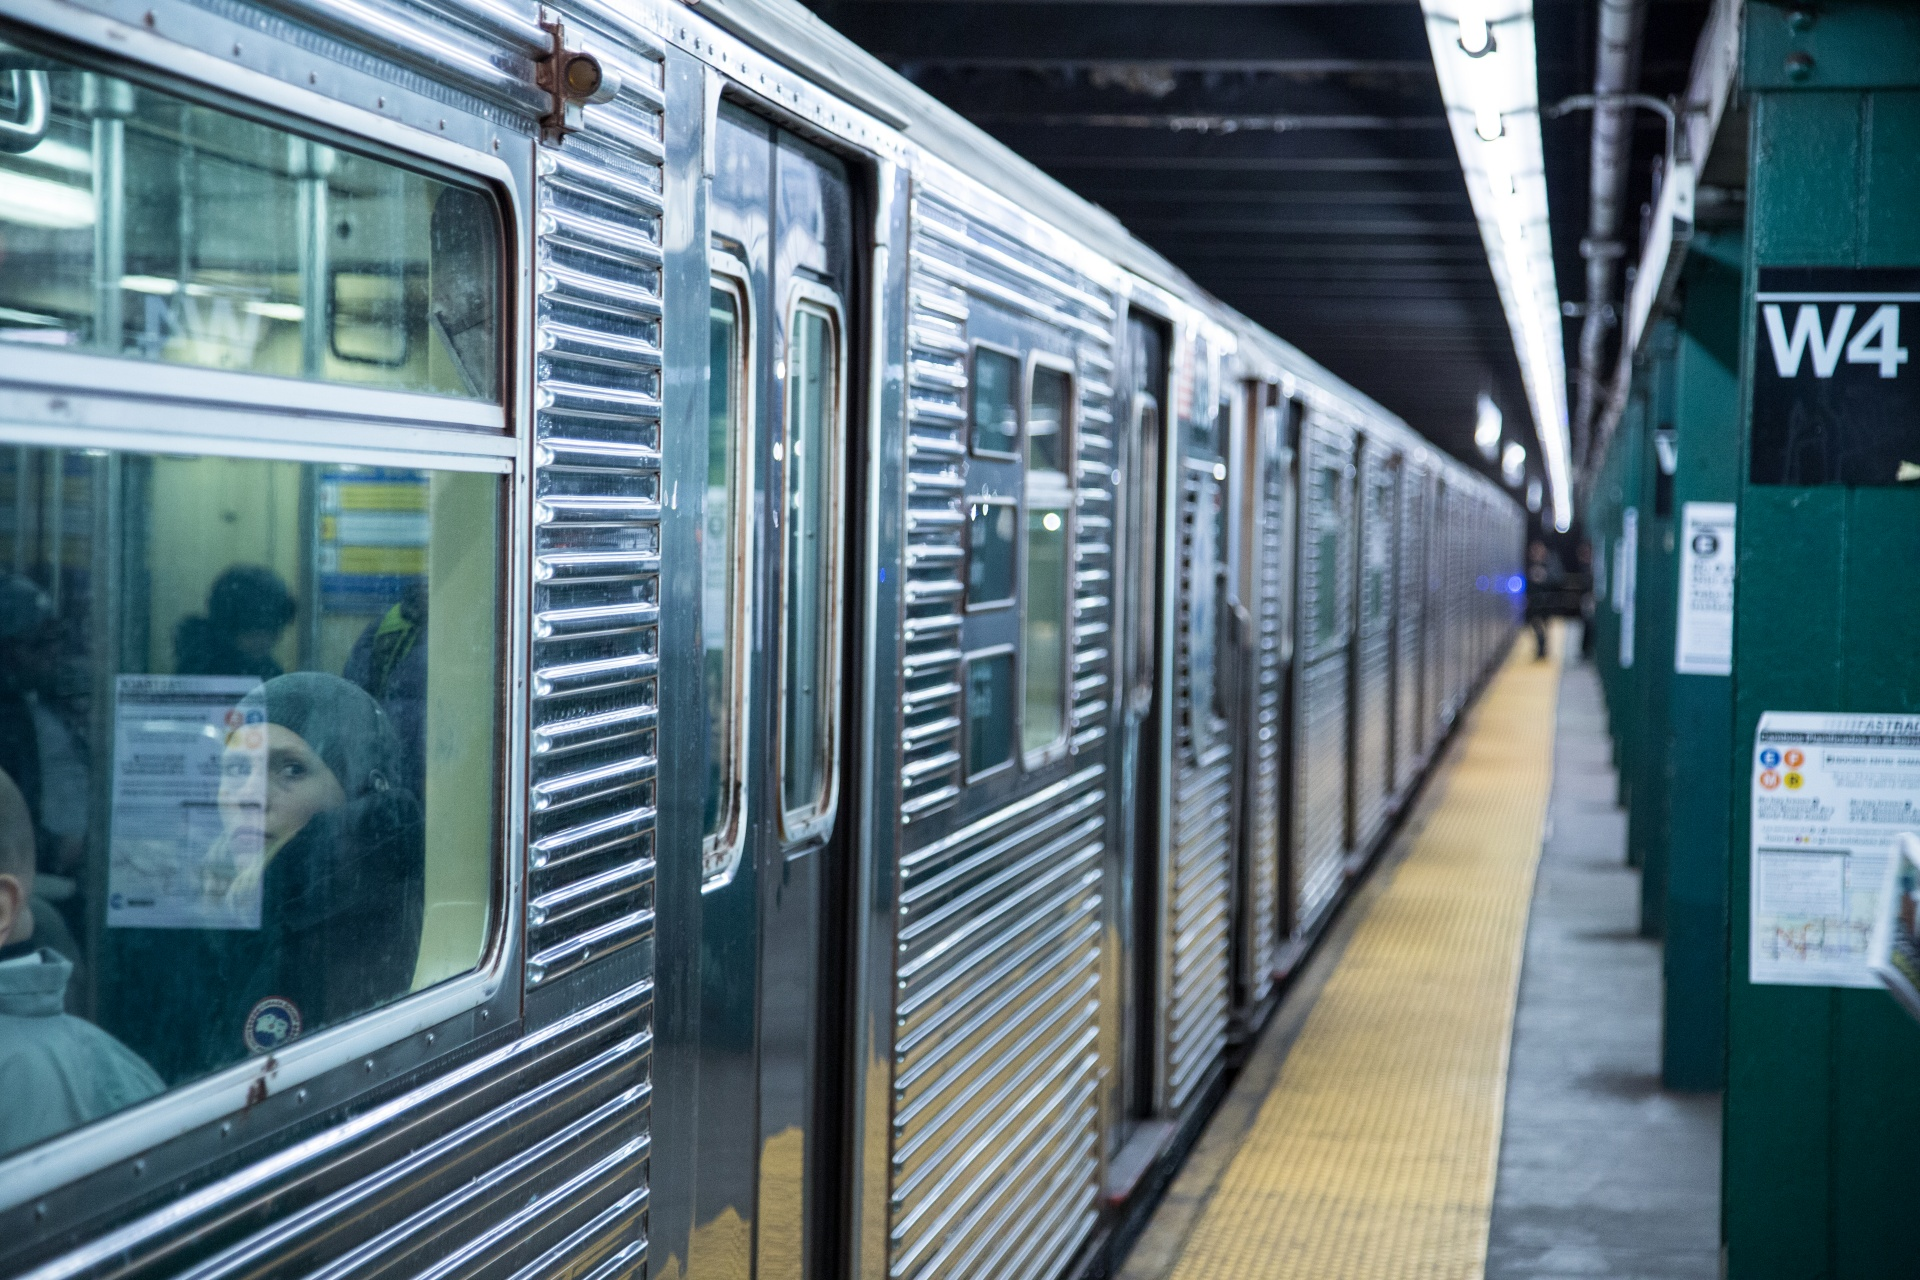 Pandemic-stricken mass transit would get $85 billion in Biden stimulus plan – a down payment on reviving American cities